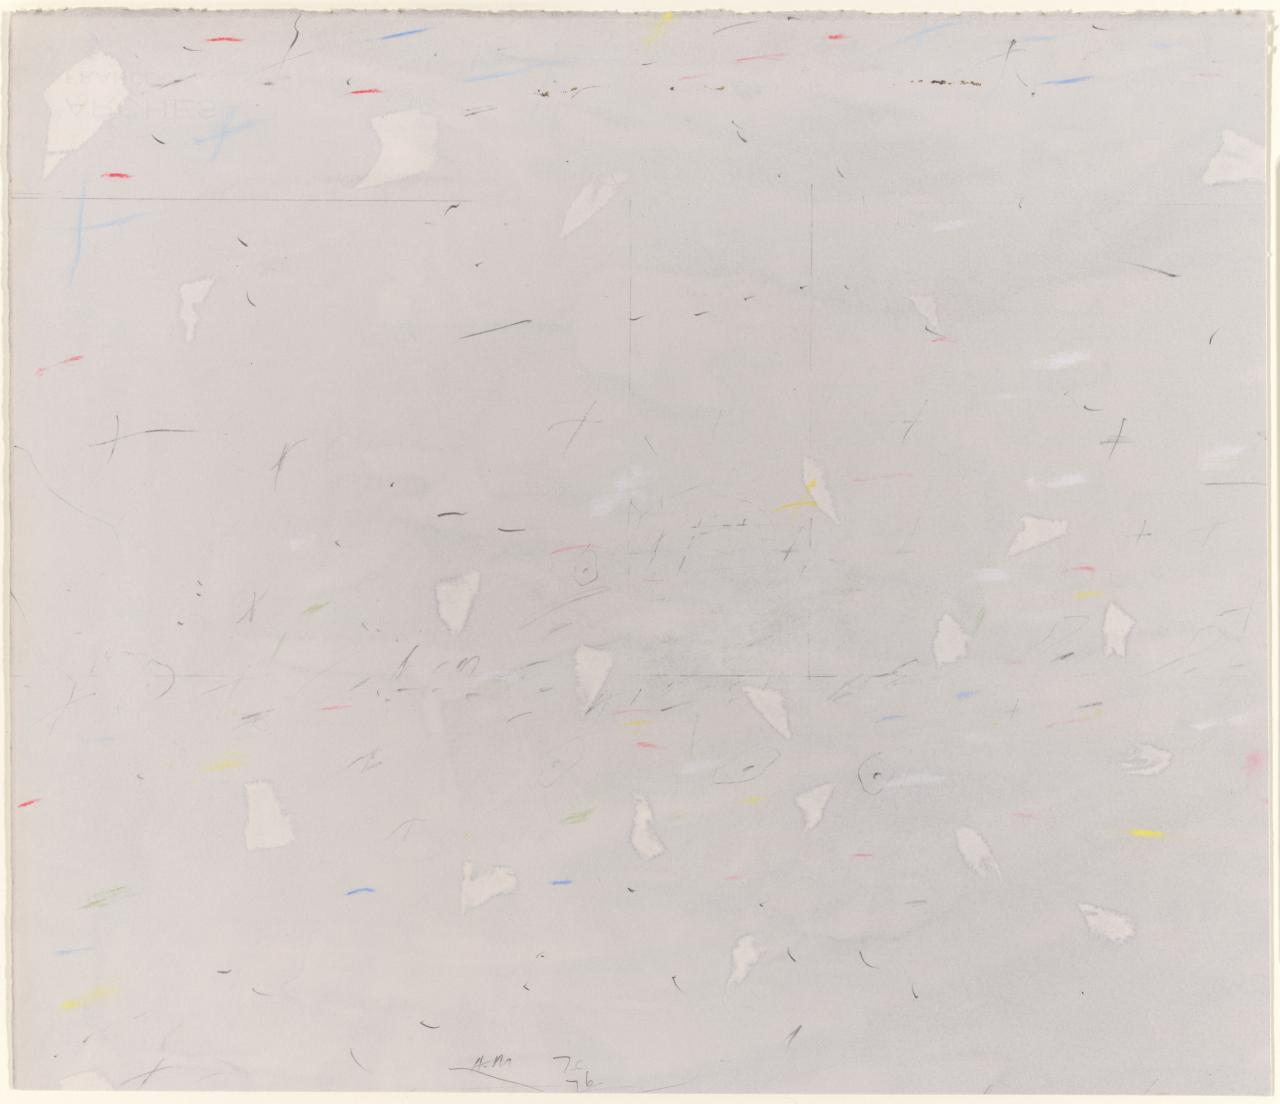 Untitled (light patches against a grey ground)